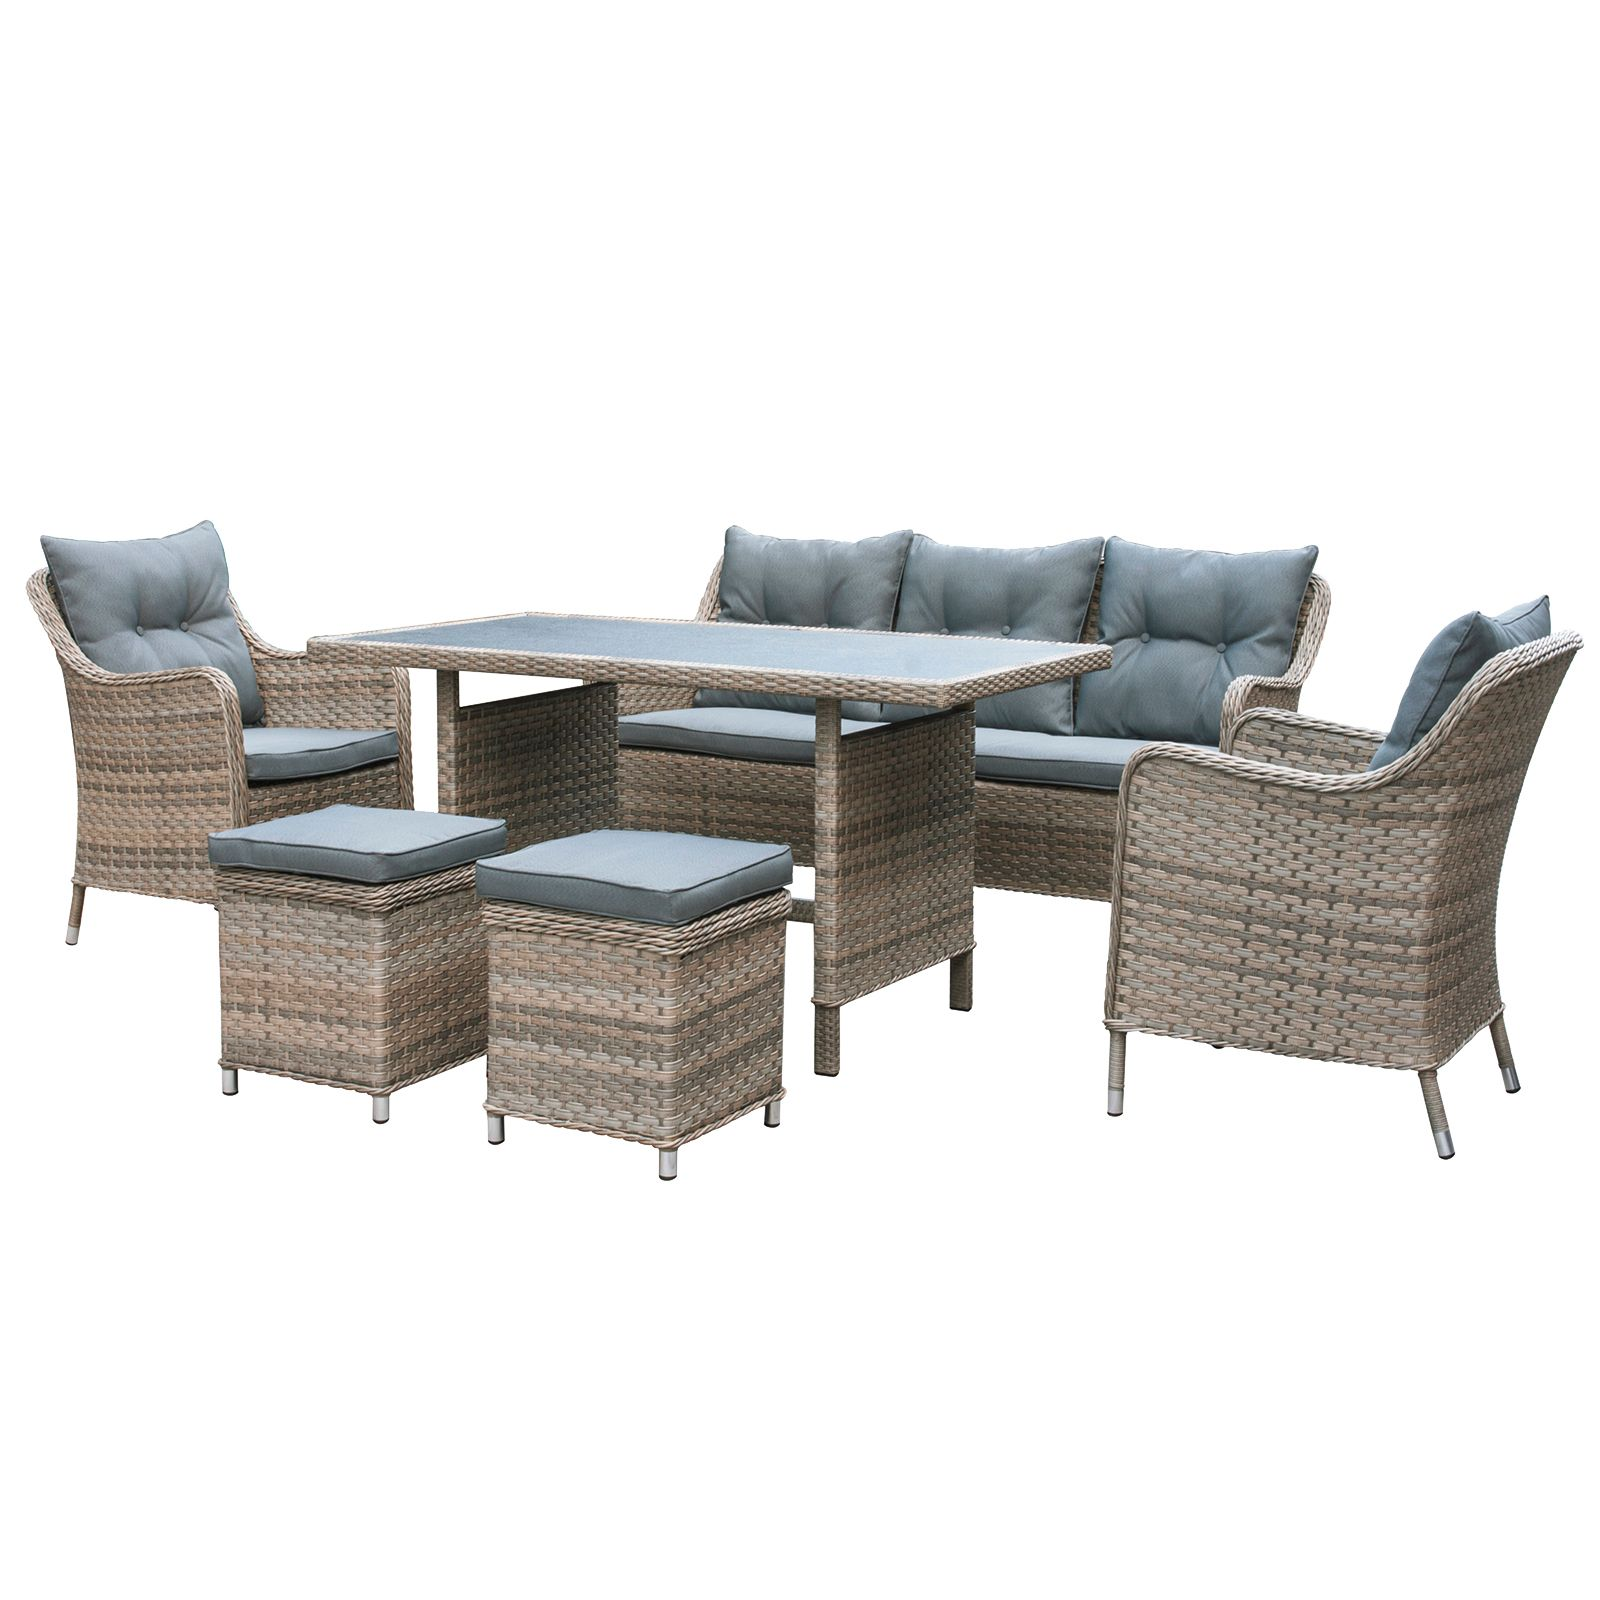 27 off oseasons kensington rattan 7 seater sofa dining for Lounge garden furniture sets